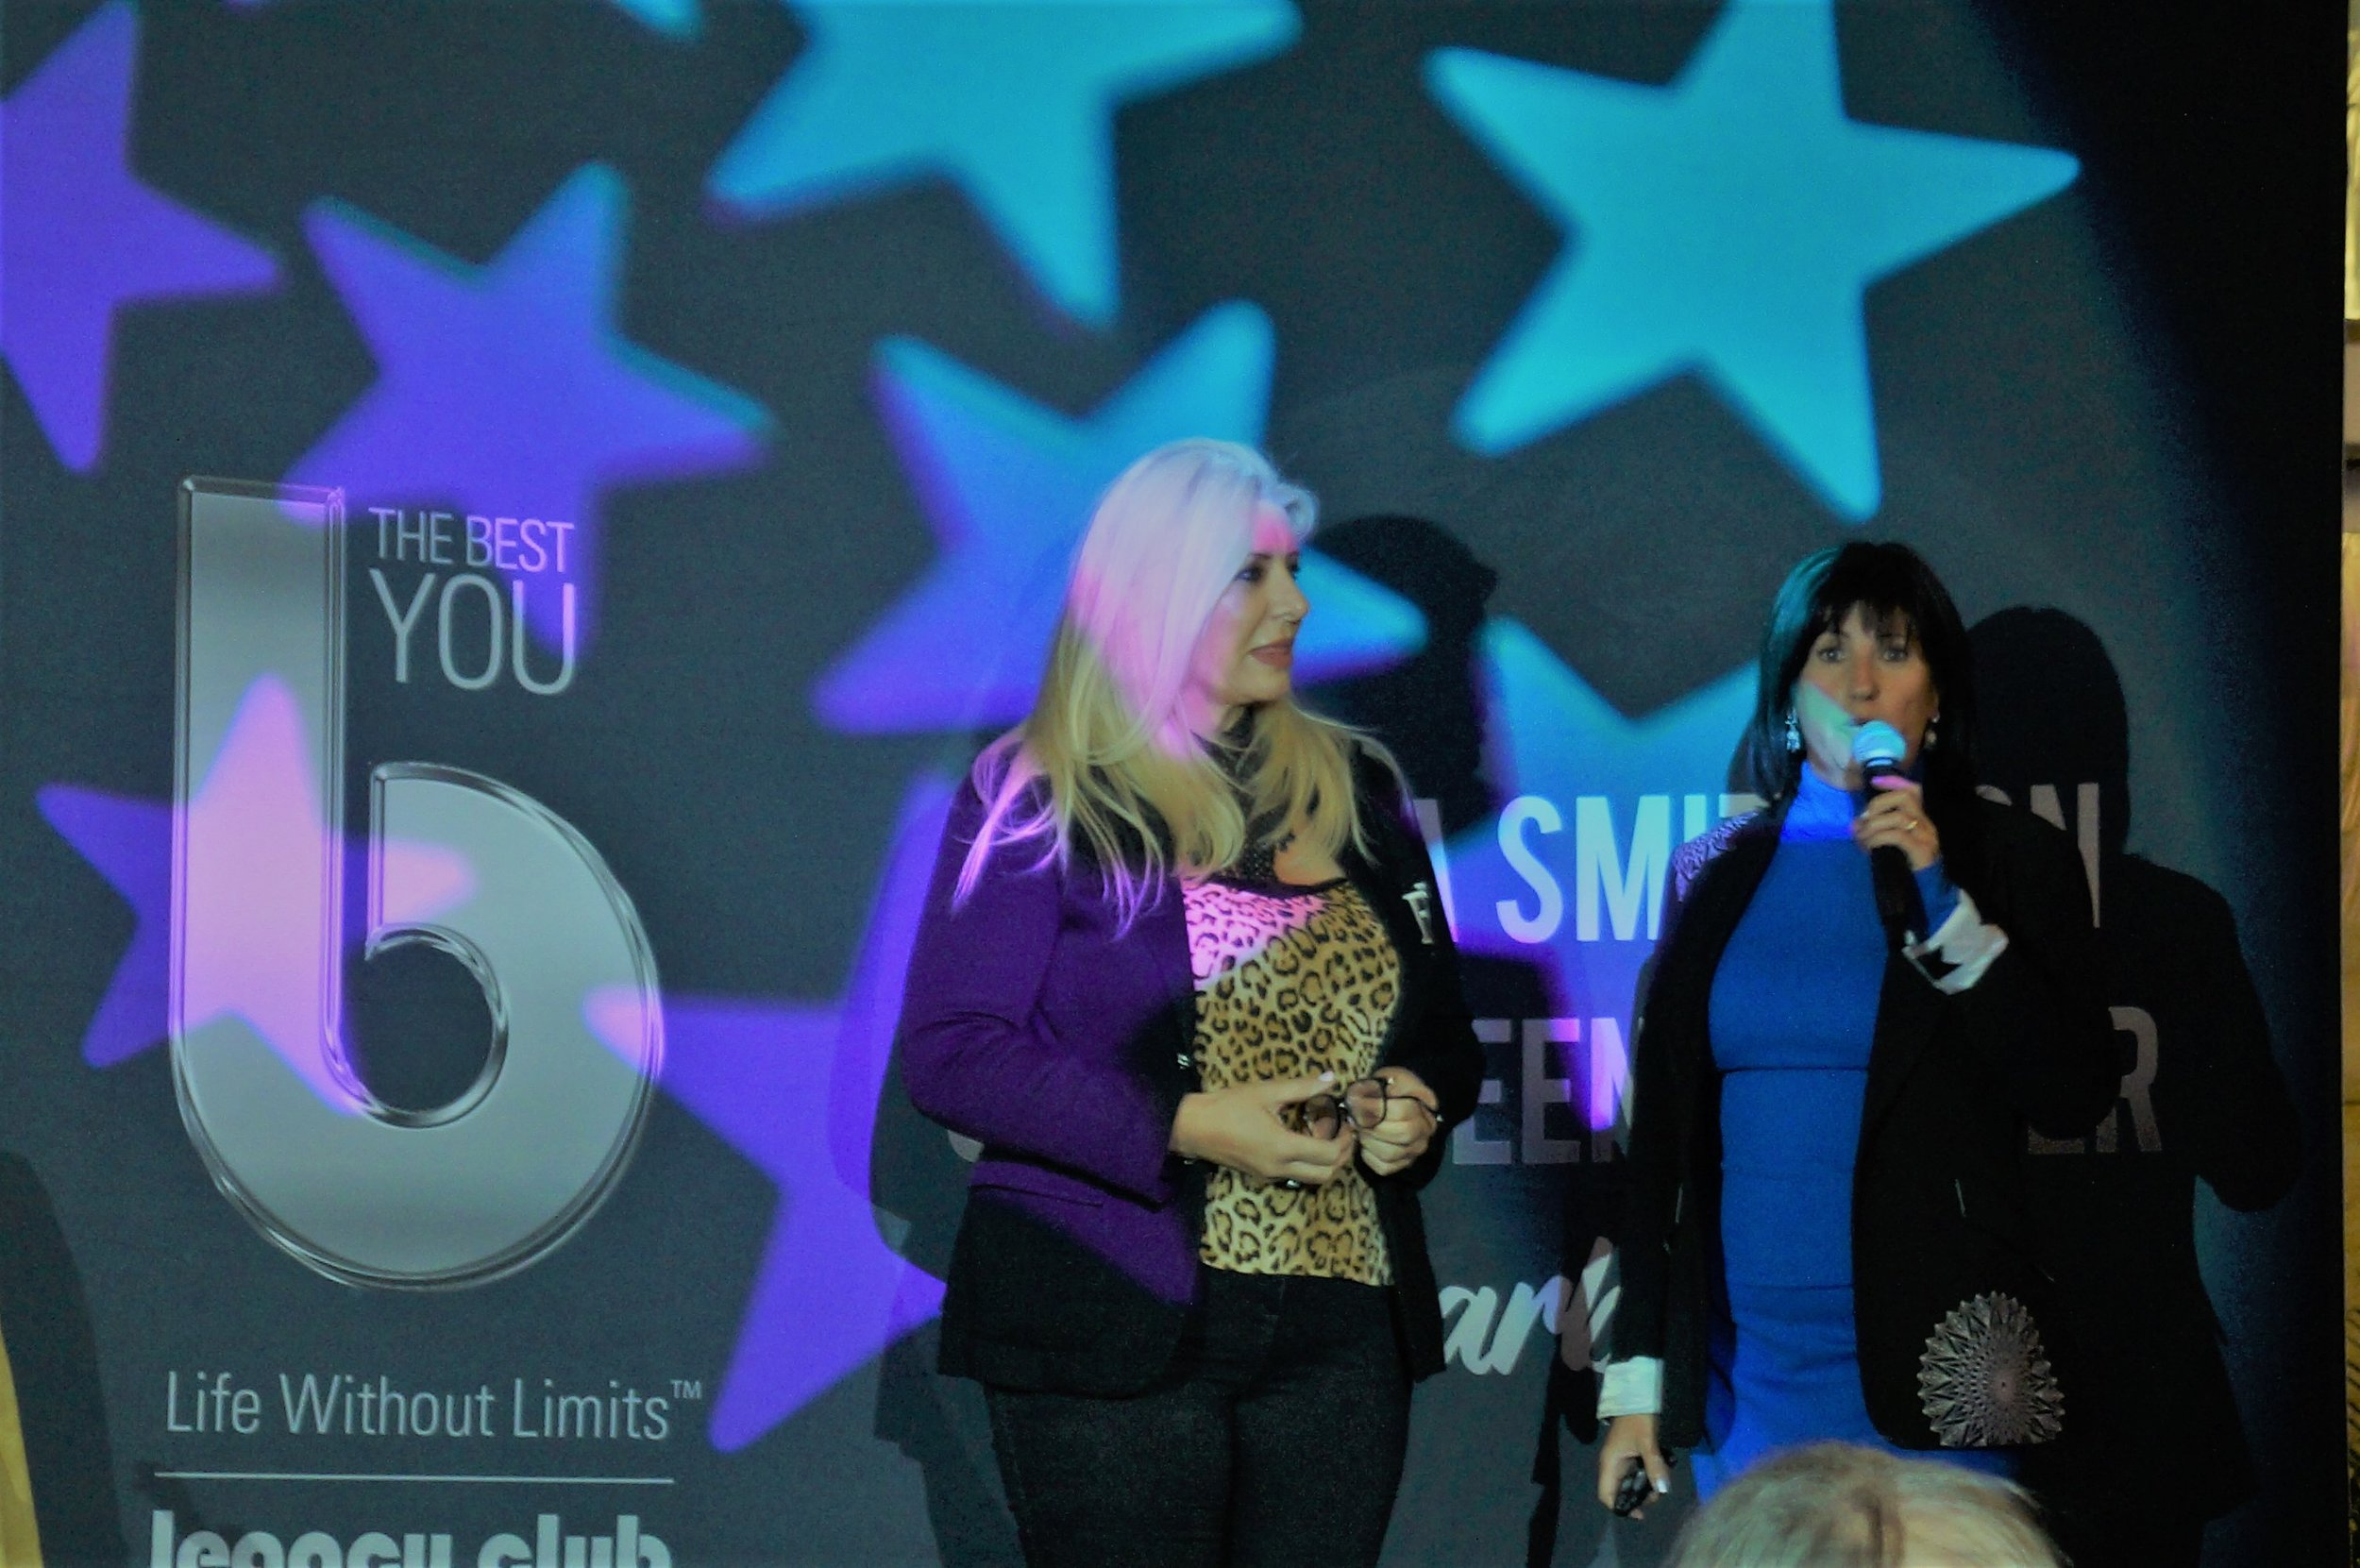 Kathleen and Glenda officially launching The Best You Legacy Club Marbella